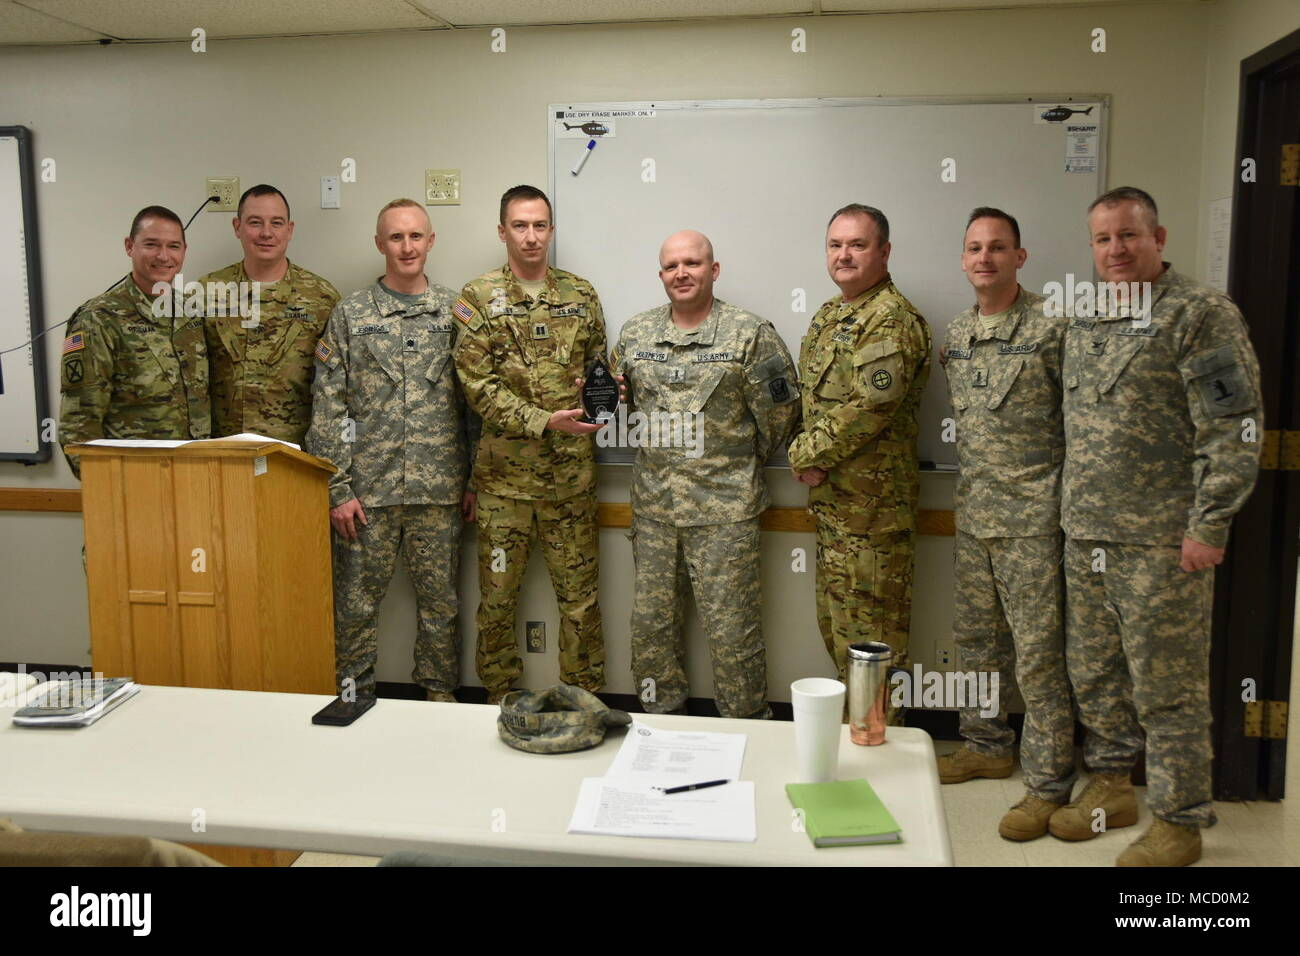 Members of the Missouri Army National Guard's Detachment 2, Company C of the 2-245th Aviation Regiment gather in Jefferson City, Missouri, with a trophy recognizing their achievement of having been named 2017 Joint Operational Support Airlift Center Unit of the Year in the Army National Guard – West category by the U.S. Transportation Command, Feb. 8, 2018. Detachment 2 is responsible for operating and maintaining the state's C-12 Huron, a military passenger and transport aircraft, and provides direct support for the U.S. Transportation Command, one of nine unified Department of Defense comman Stock Photo